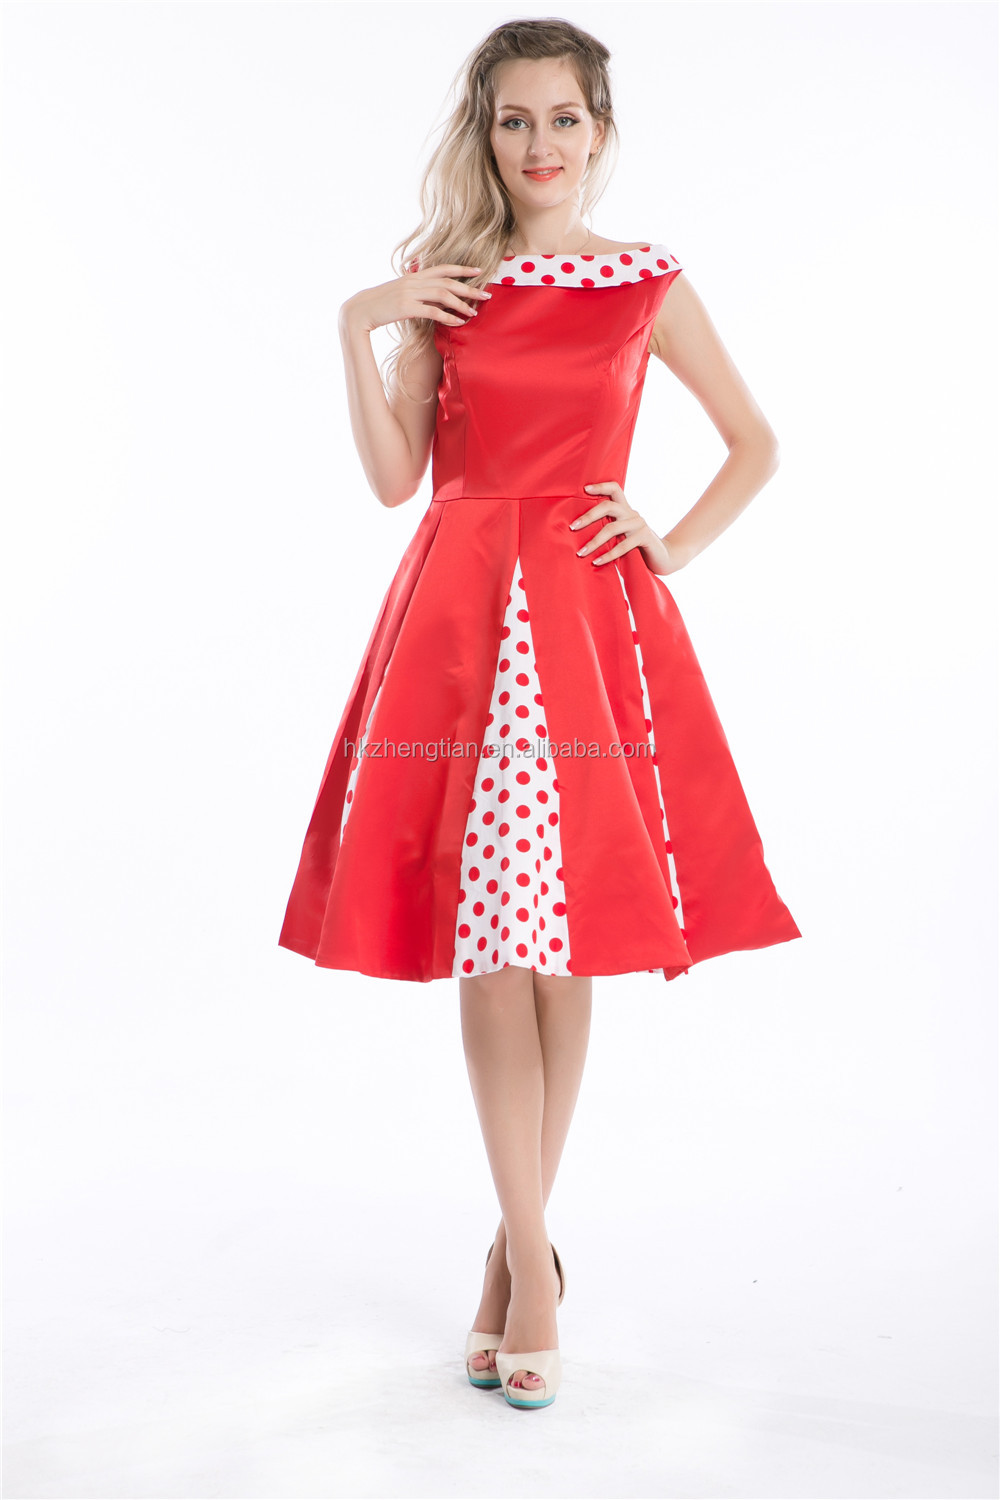 quanzhou walson bestdress womens rockabilly vintage 1950s